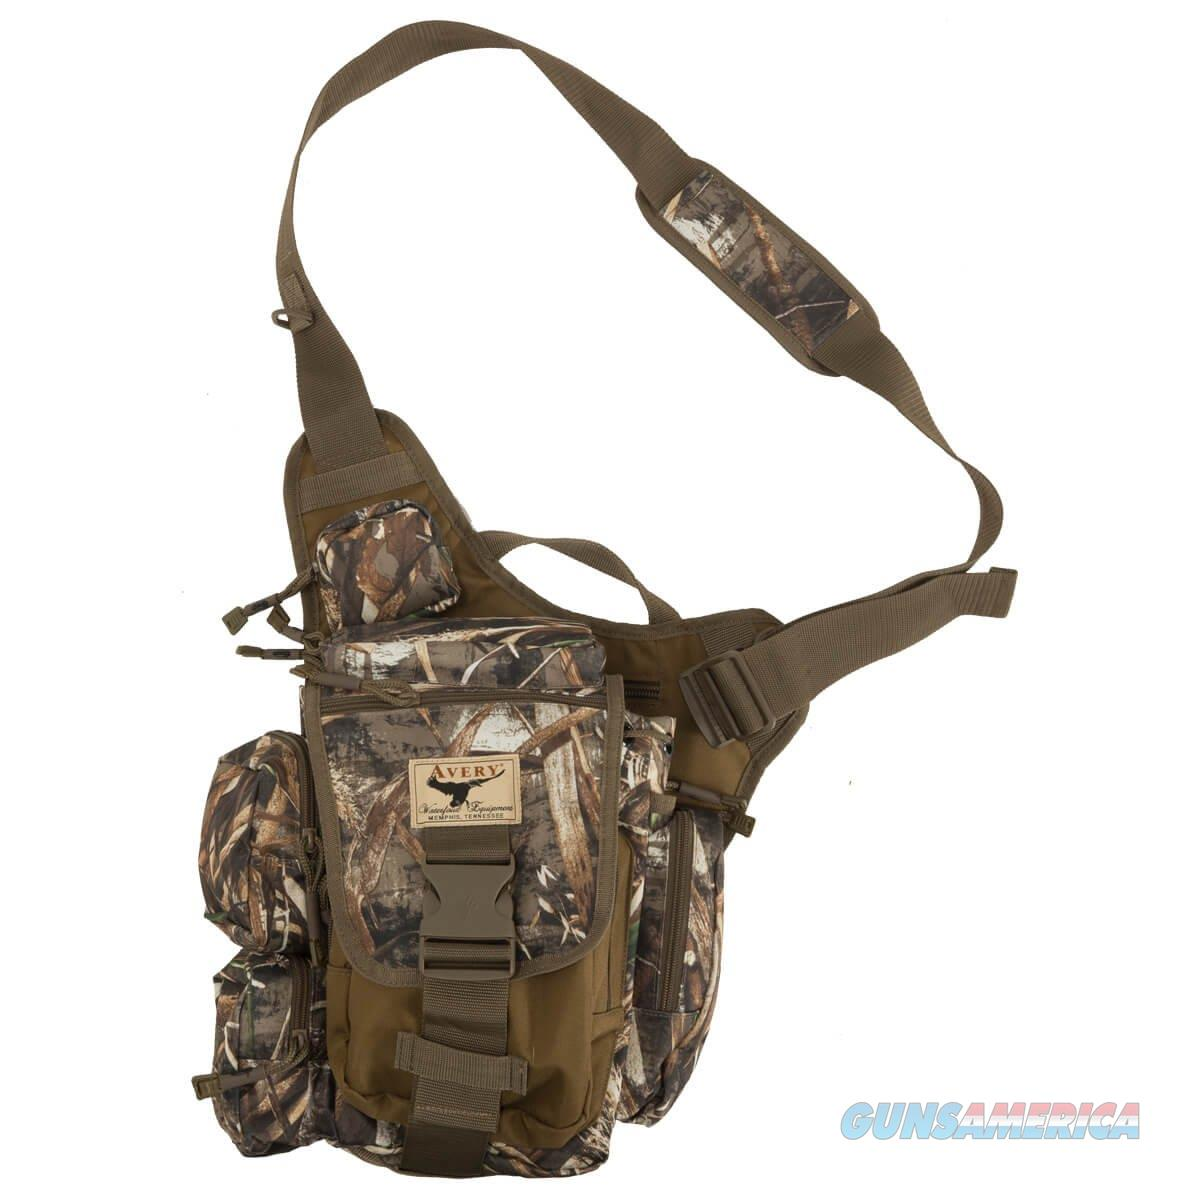 Avery Messenger Bag With Carry Handle and Shoulder Strap, Max 5 - 00681  Non-Guns > Hunting Clothing and Equipment > Backpacks